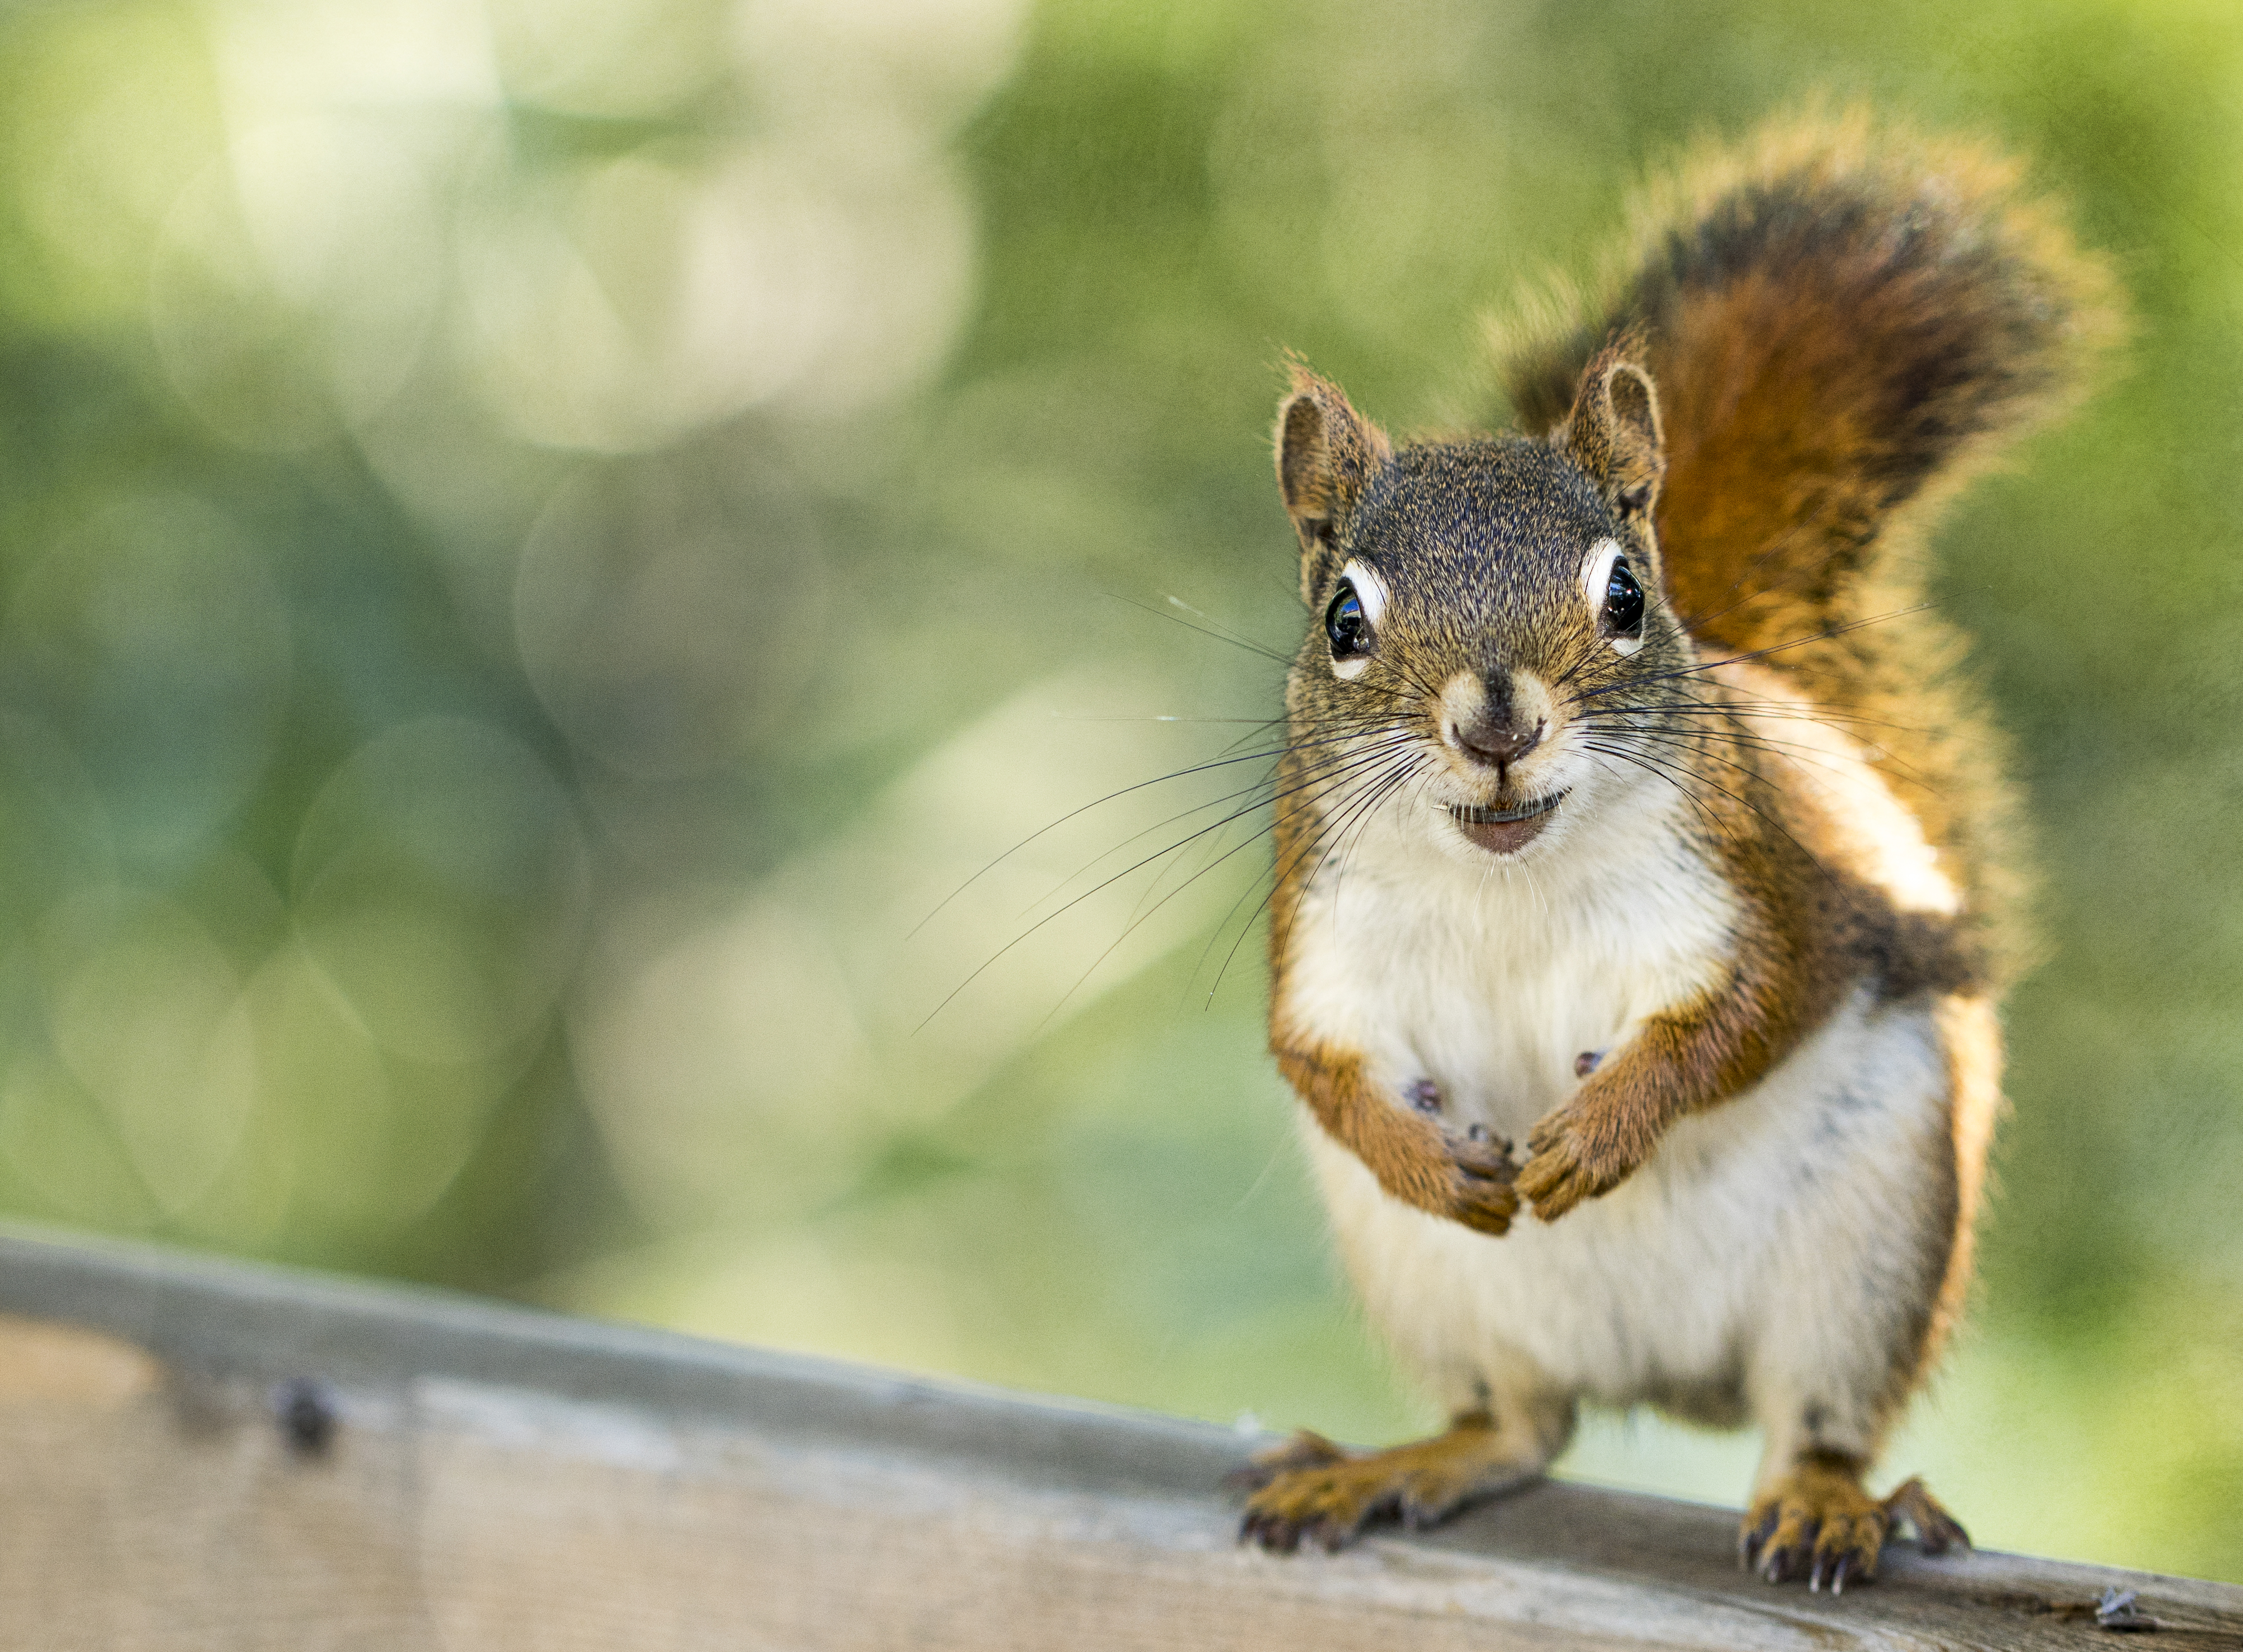 65409 download wallpaper Animals, Squirrel, Rodent, Animal, Sight, Opinion screensavers and pictures for free